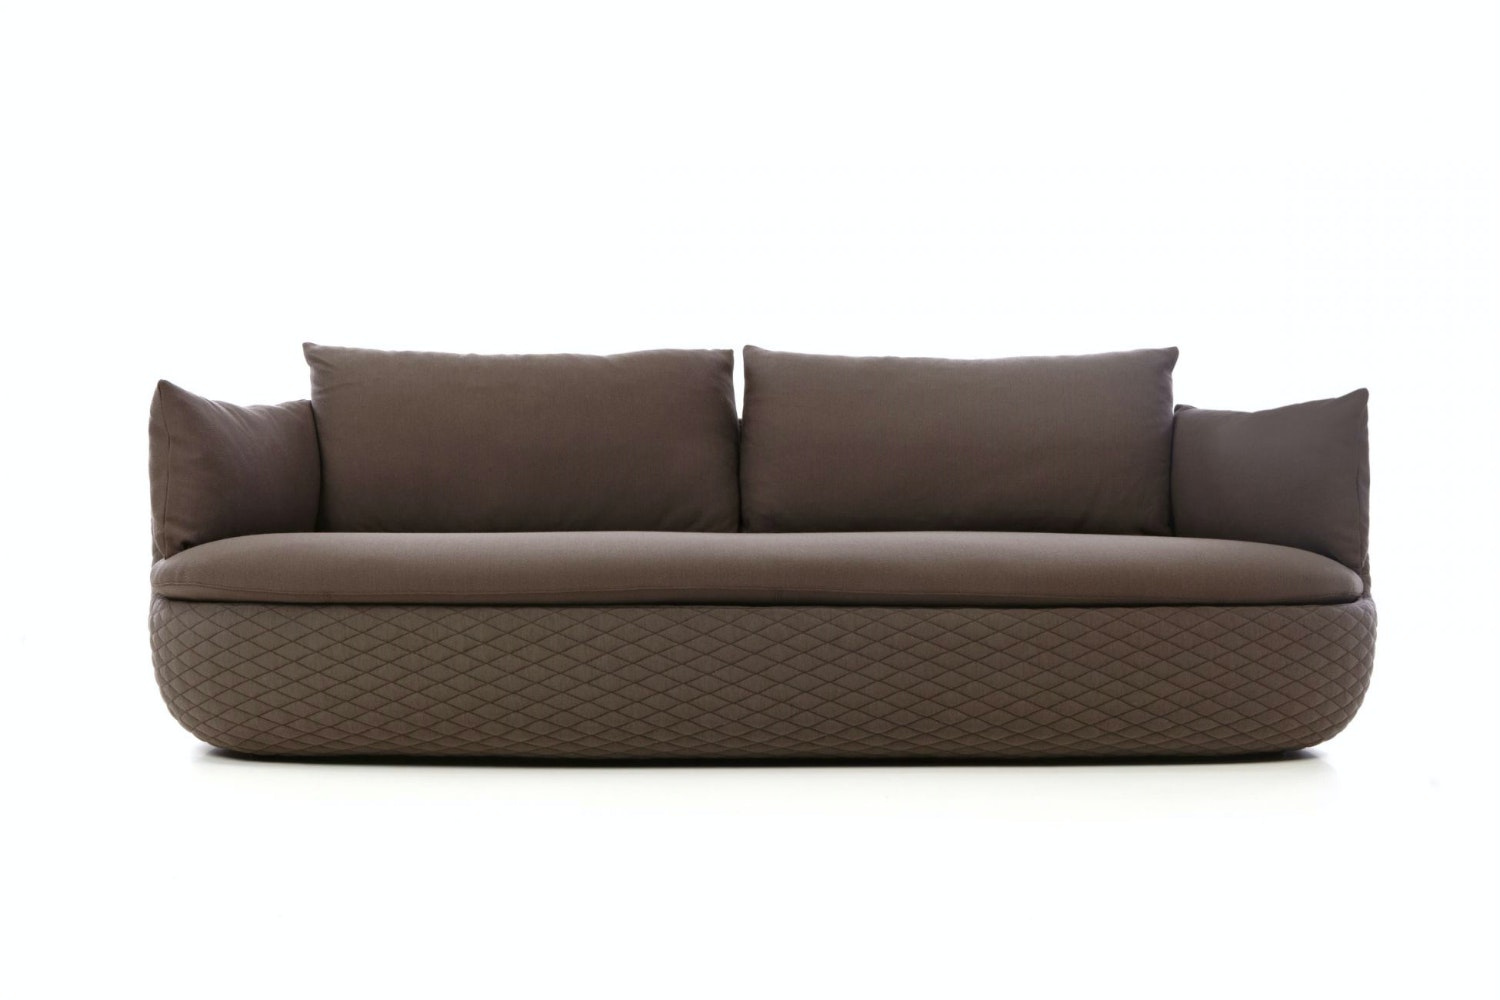 Bart Sofa by Moooi Works / Bart Schilder for Moooi